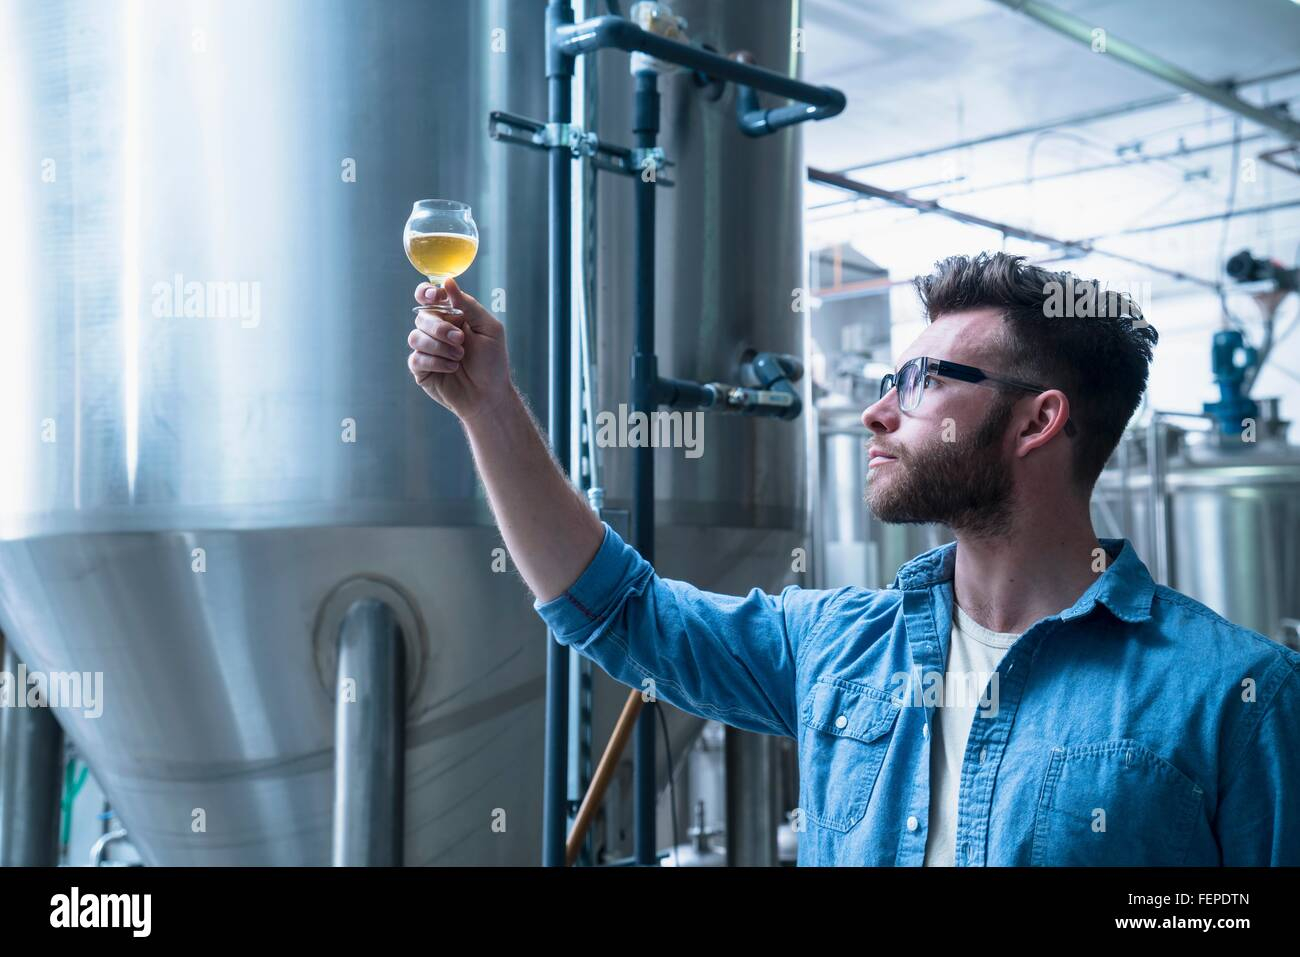 Young man in brewery holding up glass of beer, checking quality - Stock Image